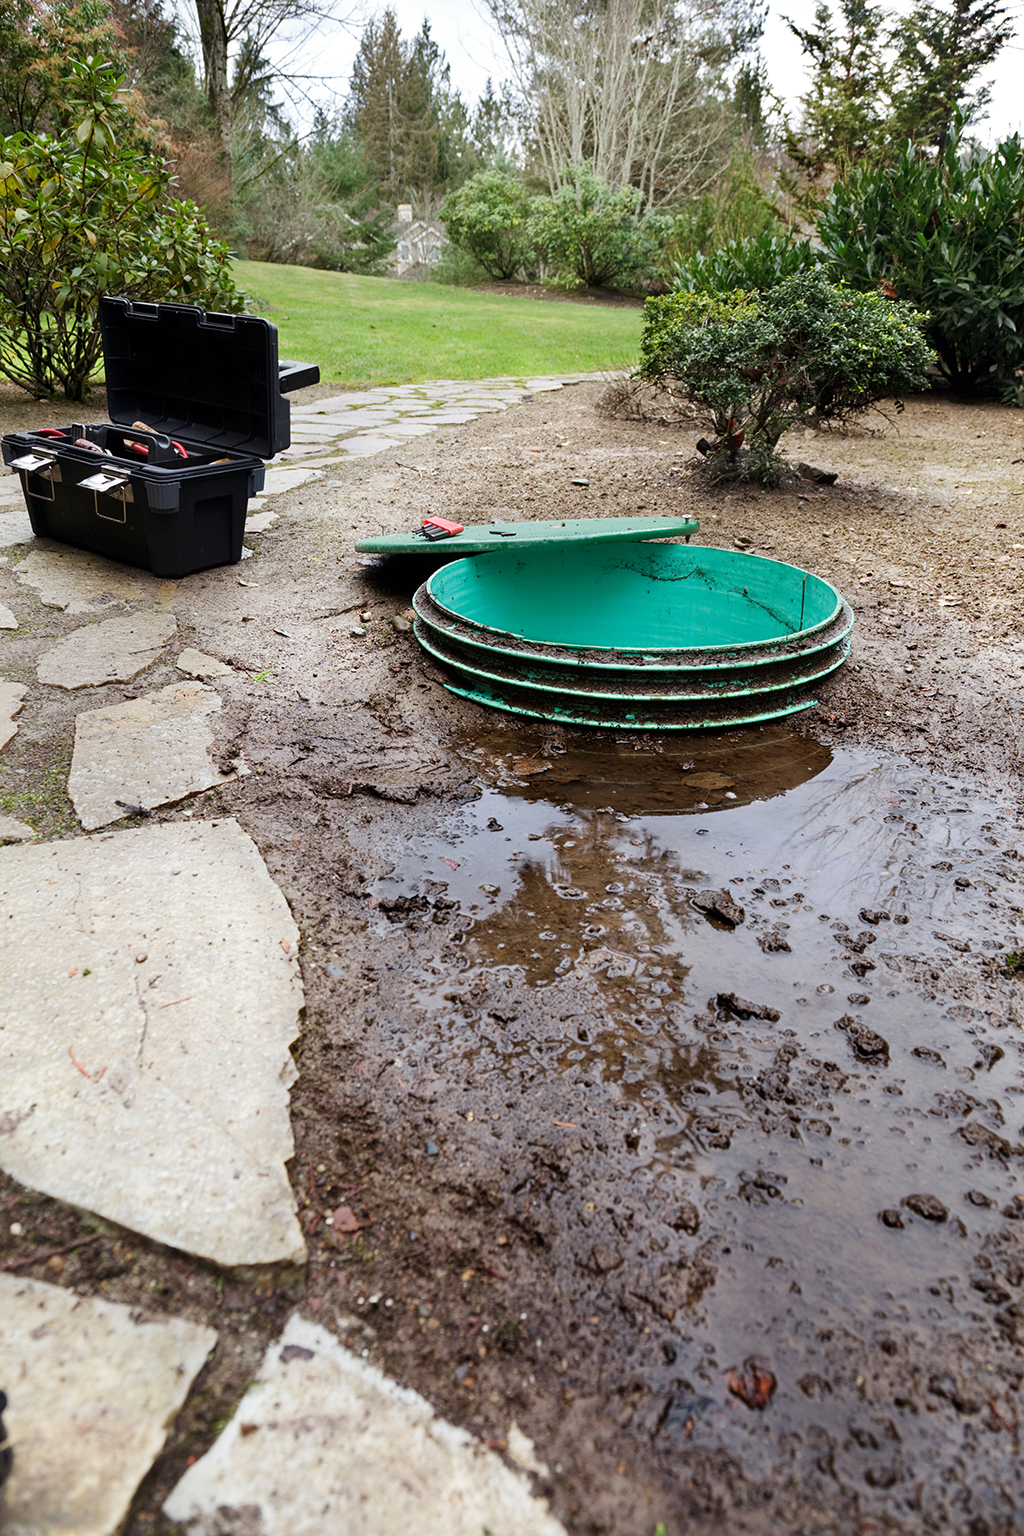 What-Is-Wrong-with-My-Septic-Tank--_-Insight-from-Your-Trusted-Chattanooga,-TN-Septic-Tank-Repair-Experts